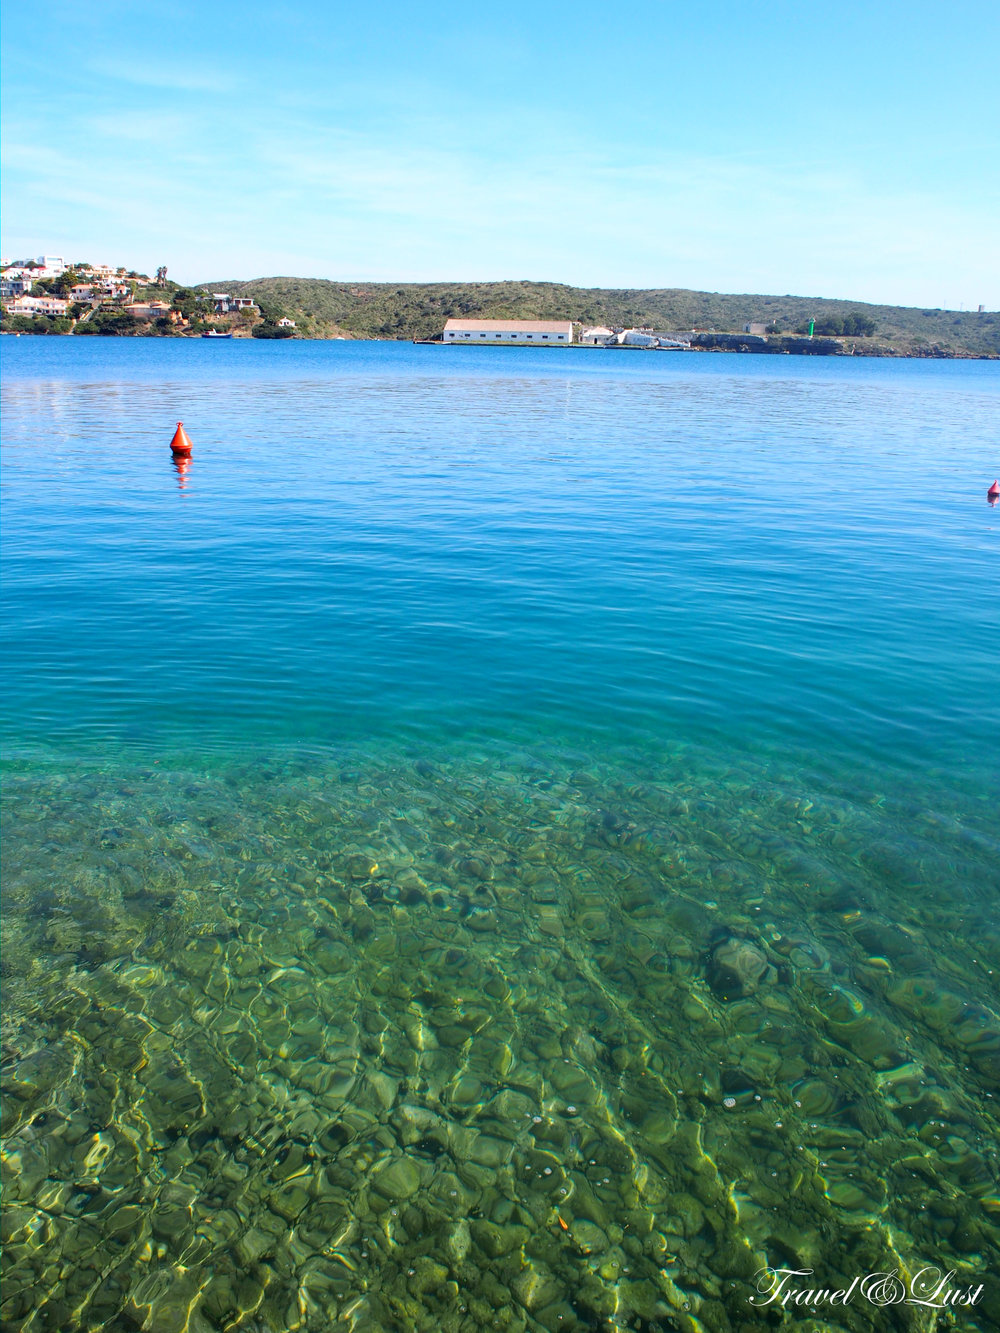 Menorca is a peaceful alternative to the usual Balearic Islands.